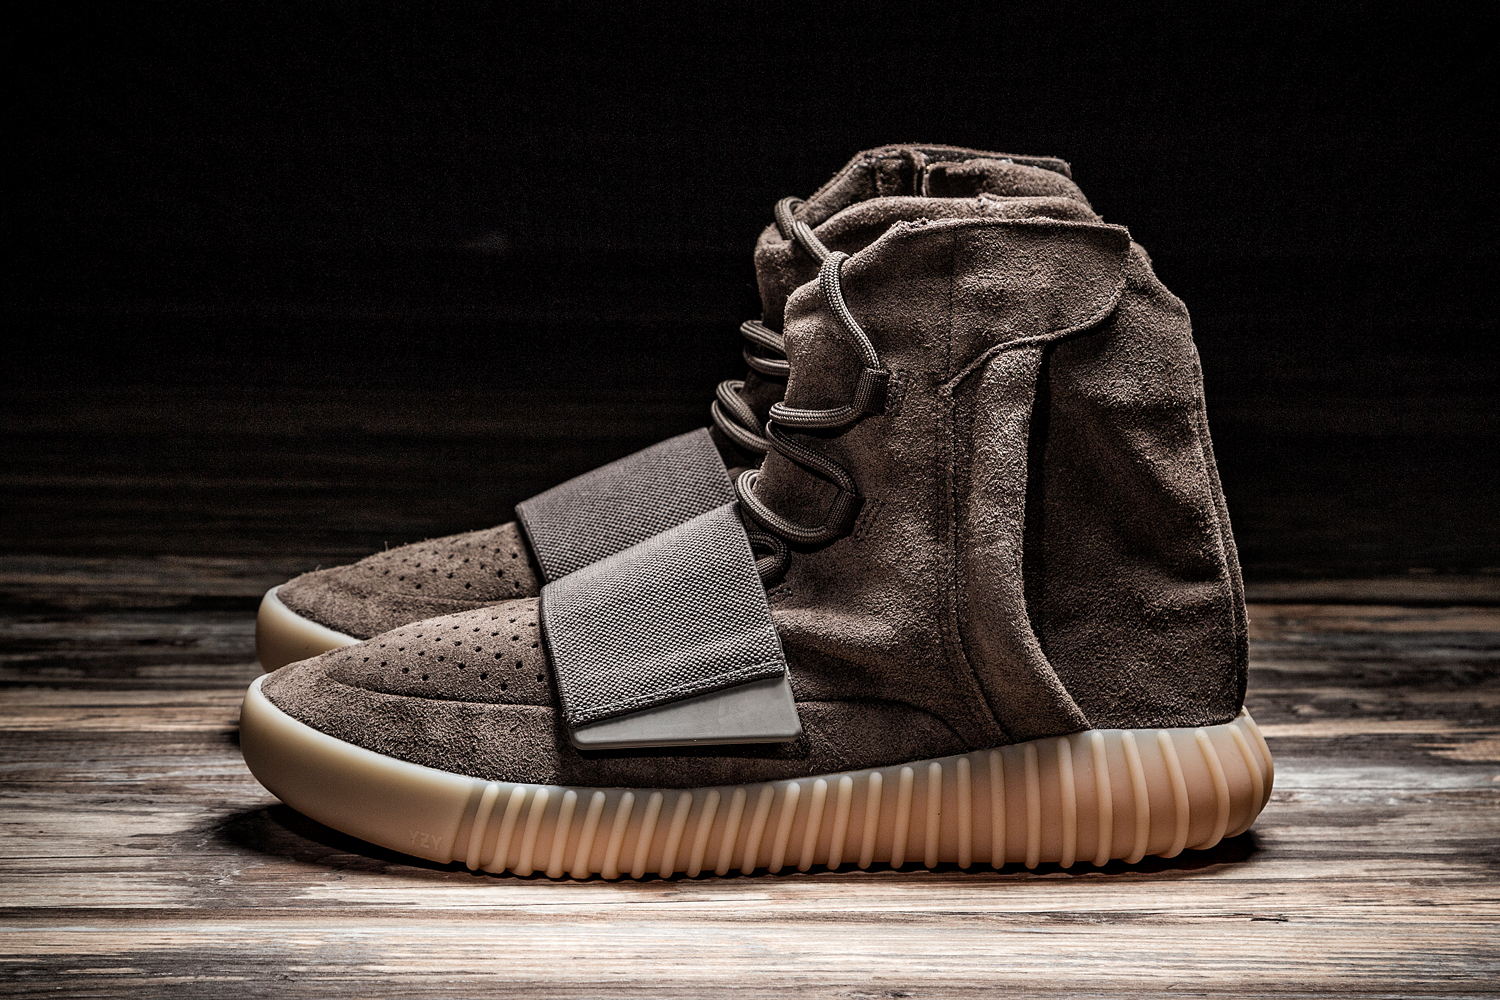 Detailed Images Of The Adidas Yeezy Boost 750 Light Brown Chocolate